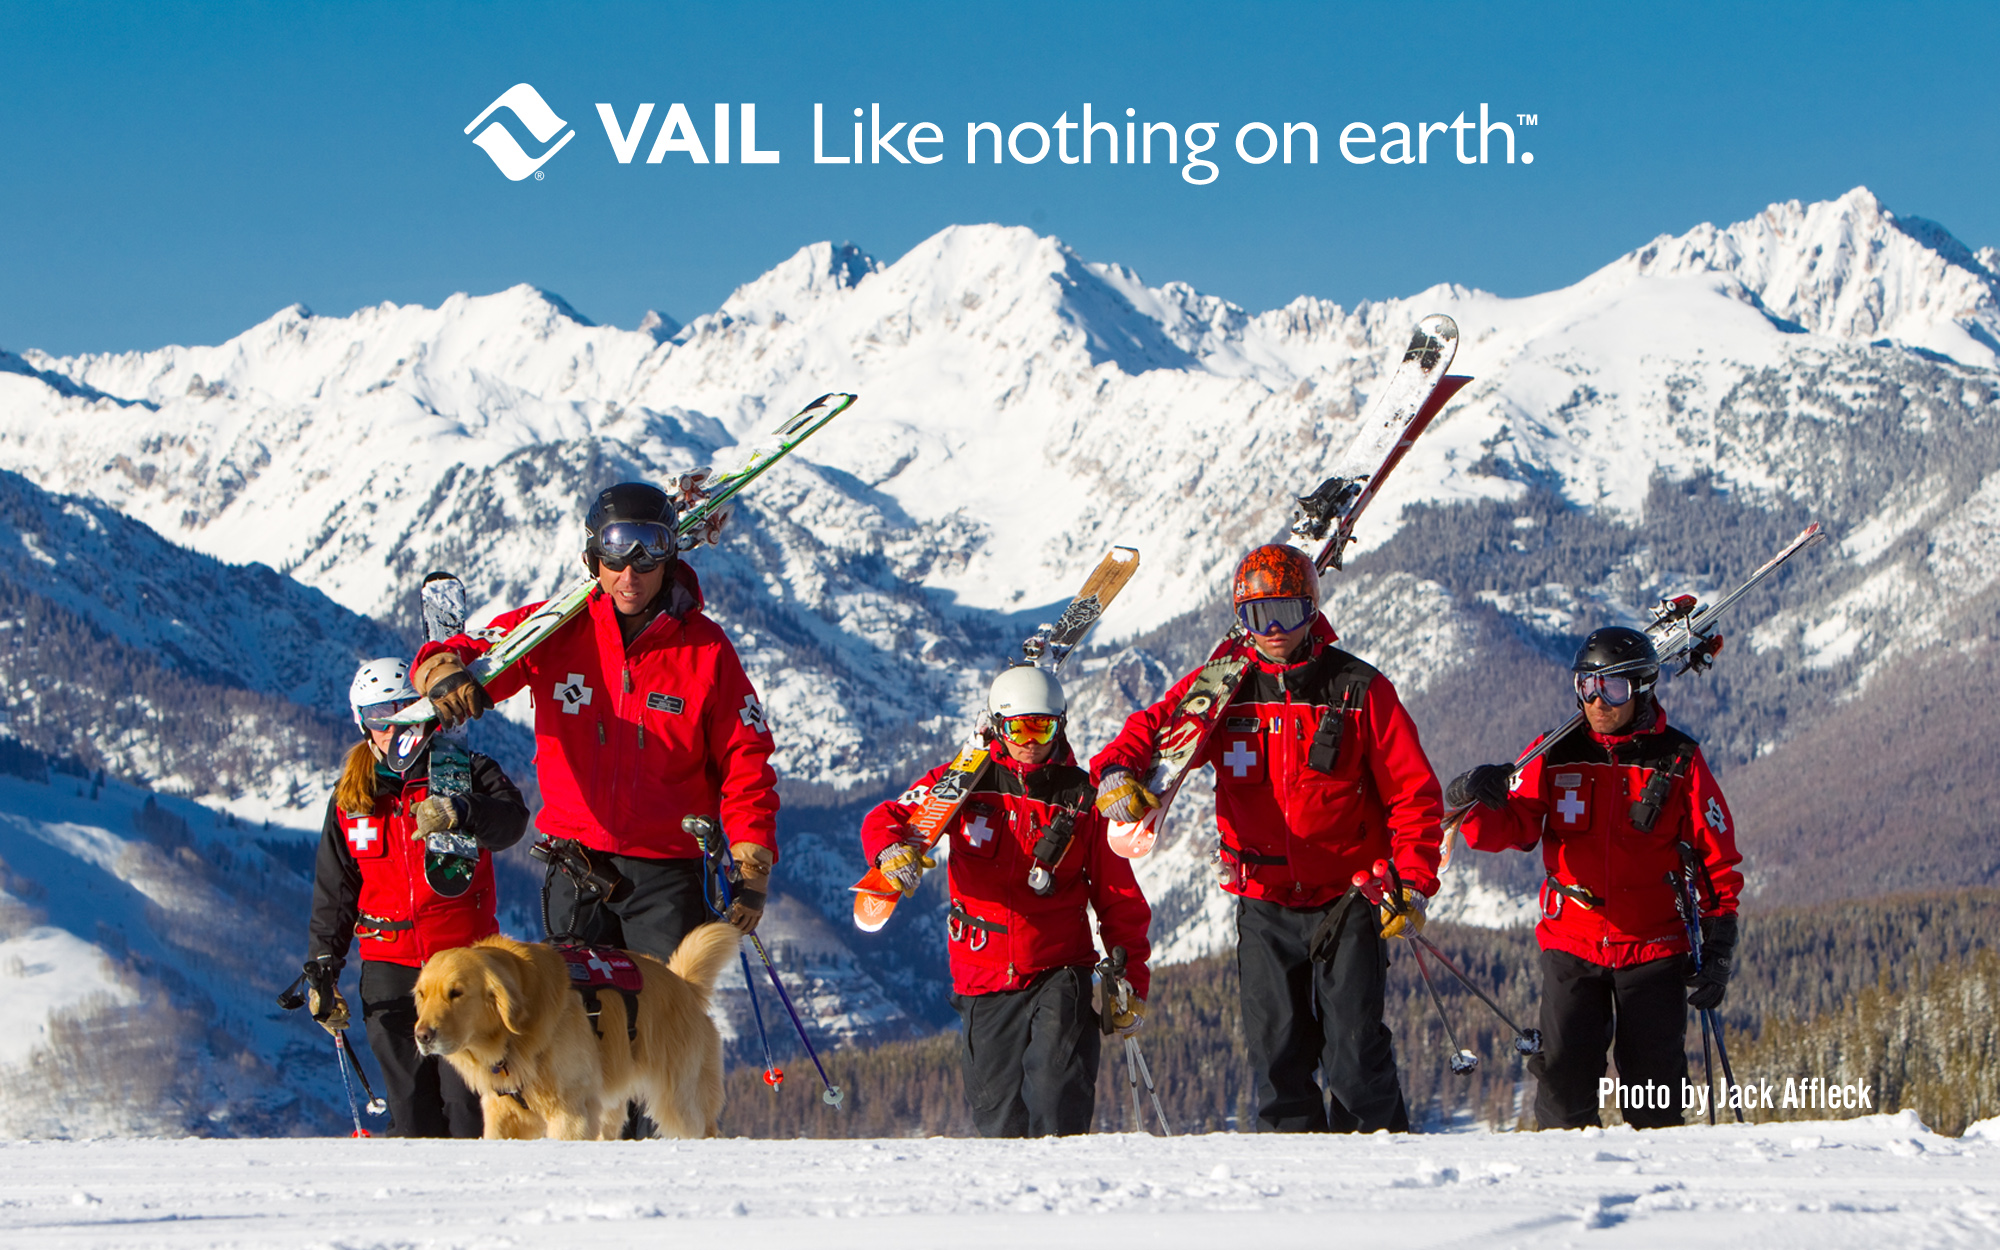 vail desktop and mobile backgrounds - blog.vailblog.vail